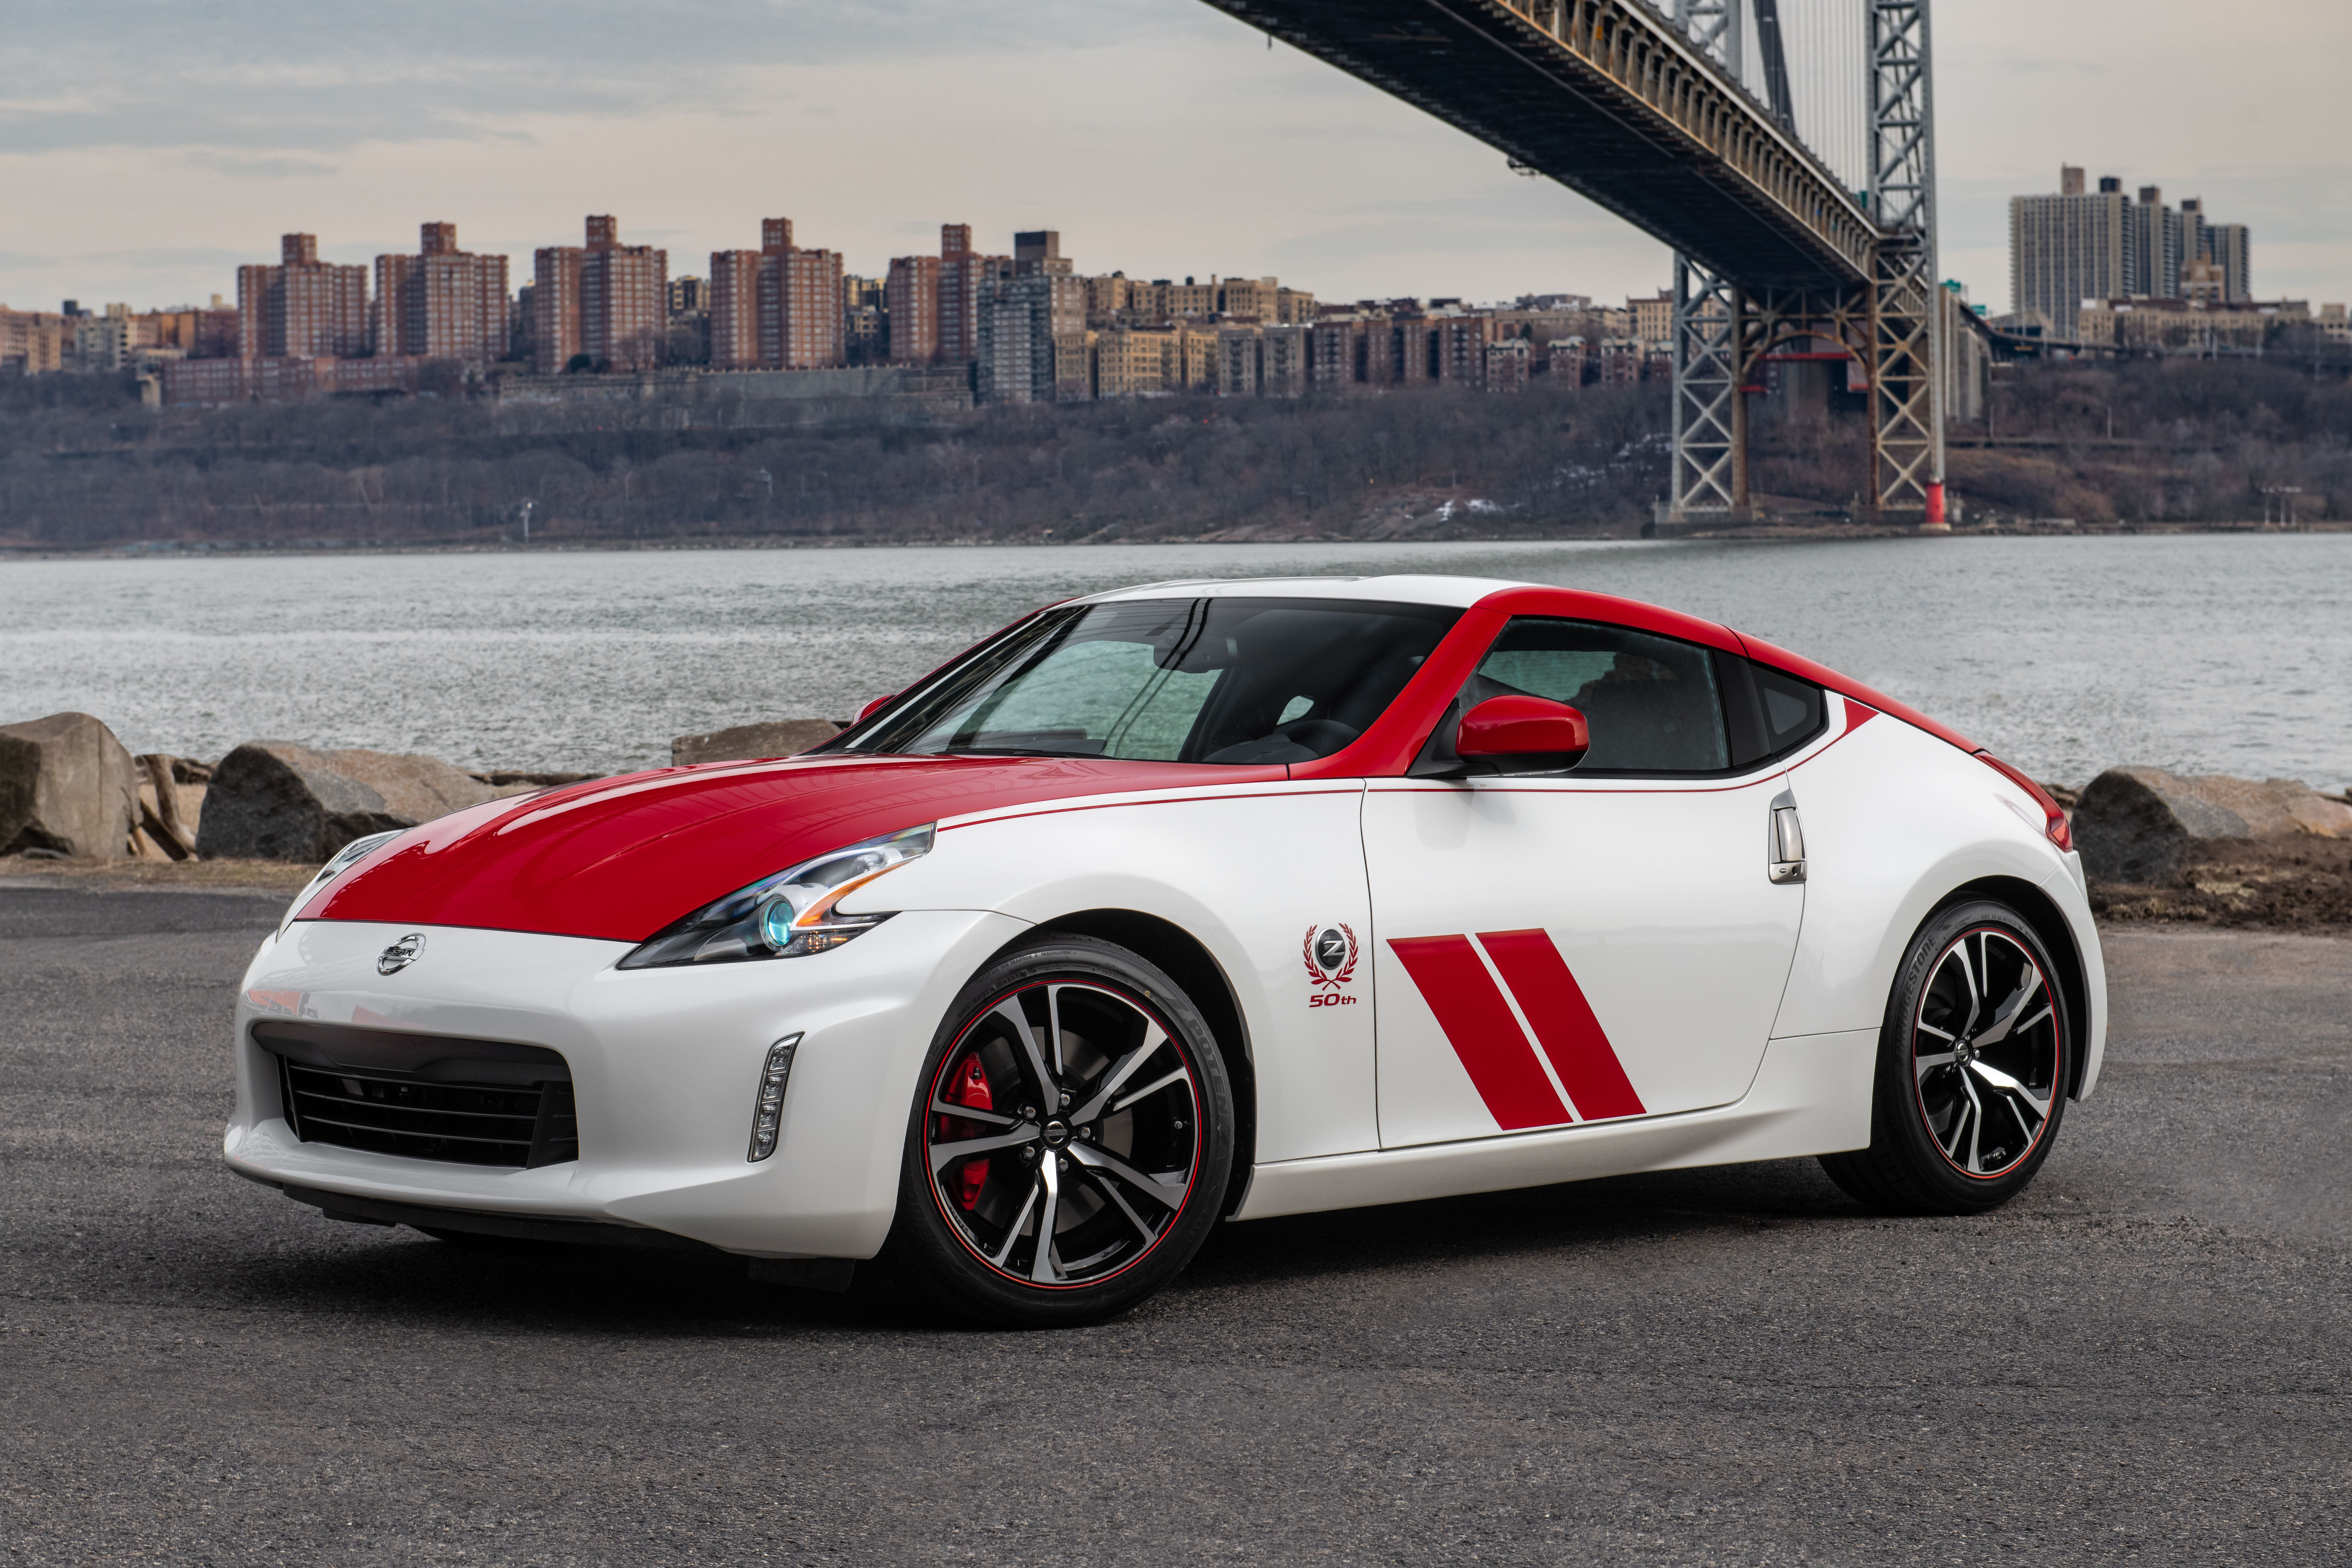 70 The Best 2020 Nissan 370Z Release Date and Concept